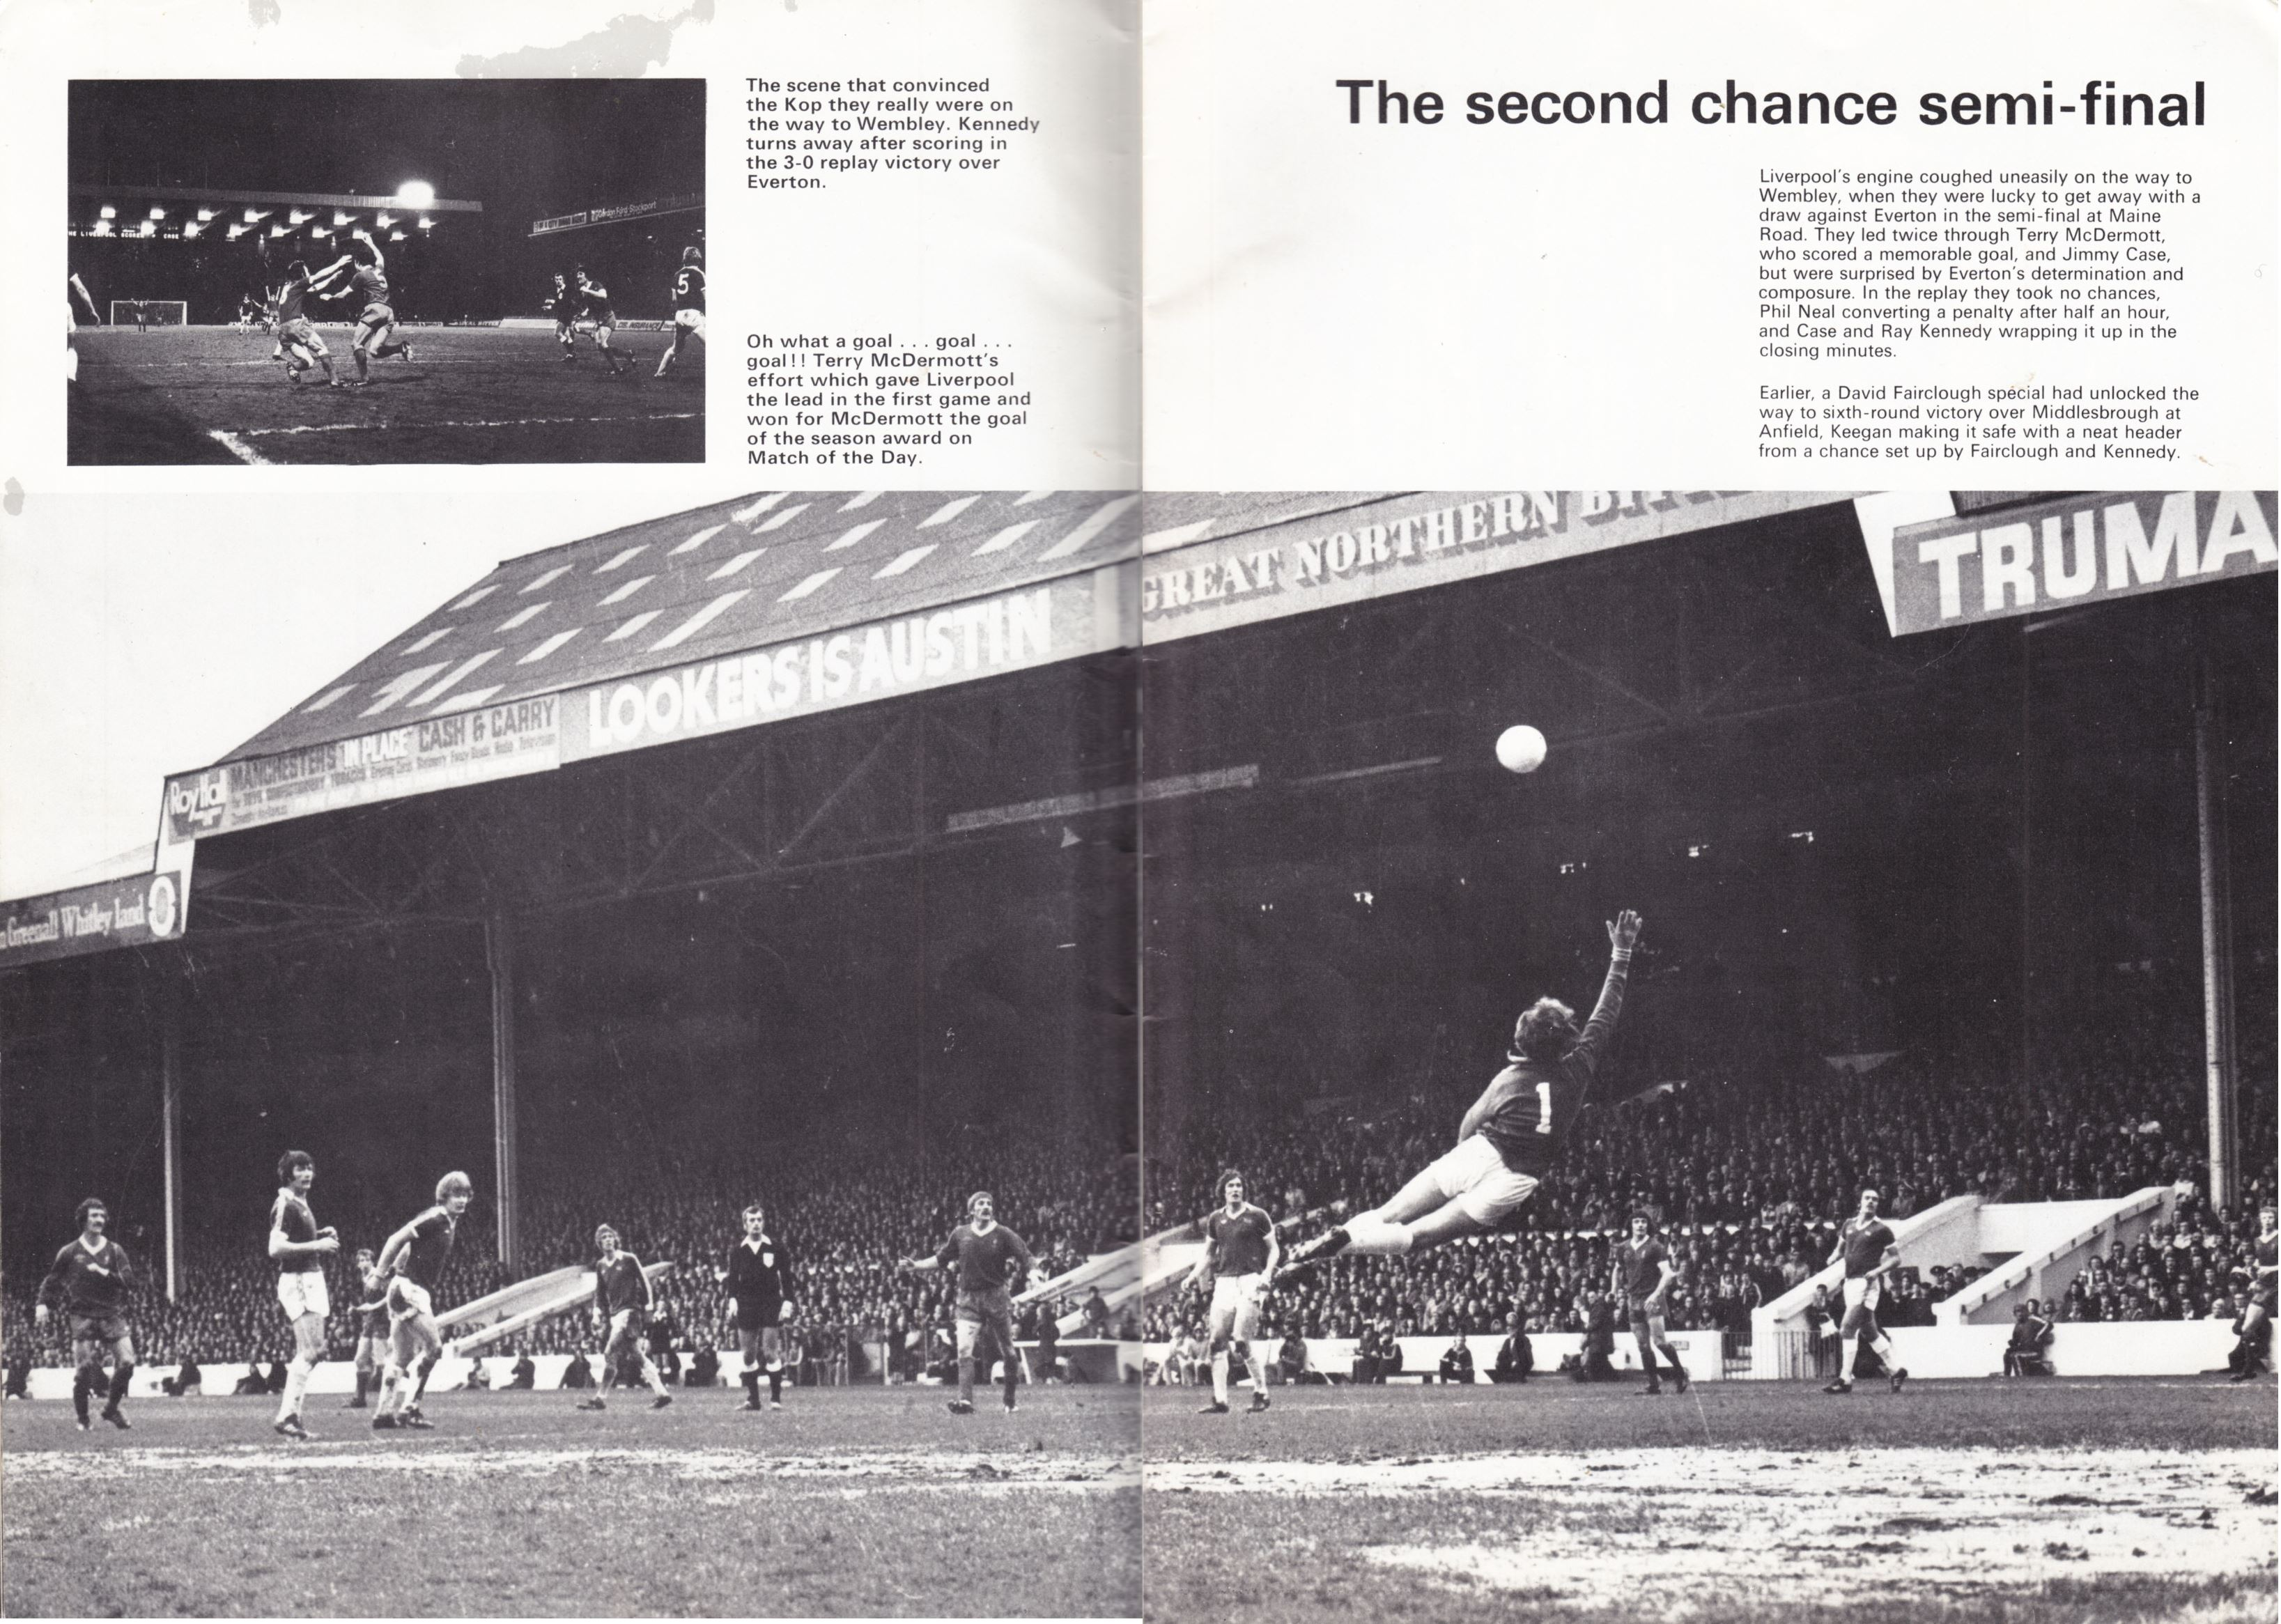 The second chance semi-final! - 27 April 1977